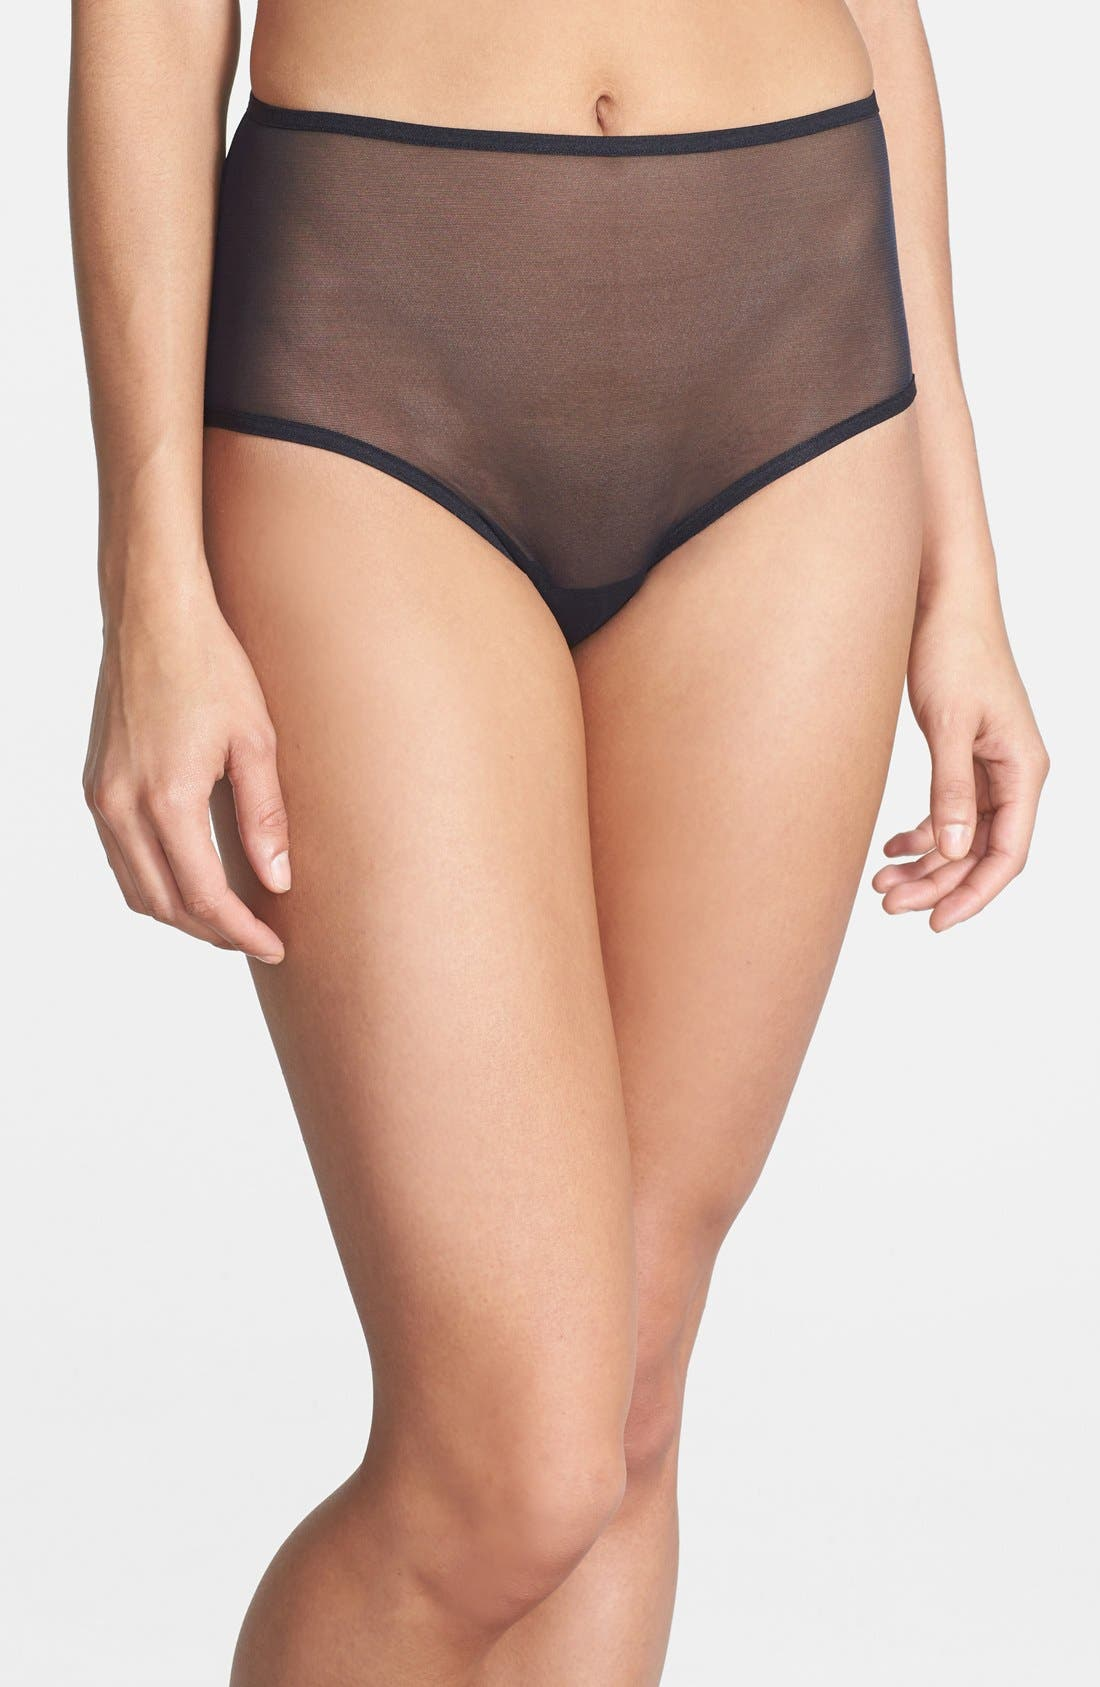 Main Image - Only Hearts 'Whisper' Cage Back Briefs